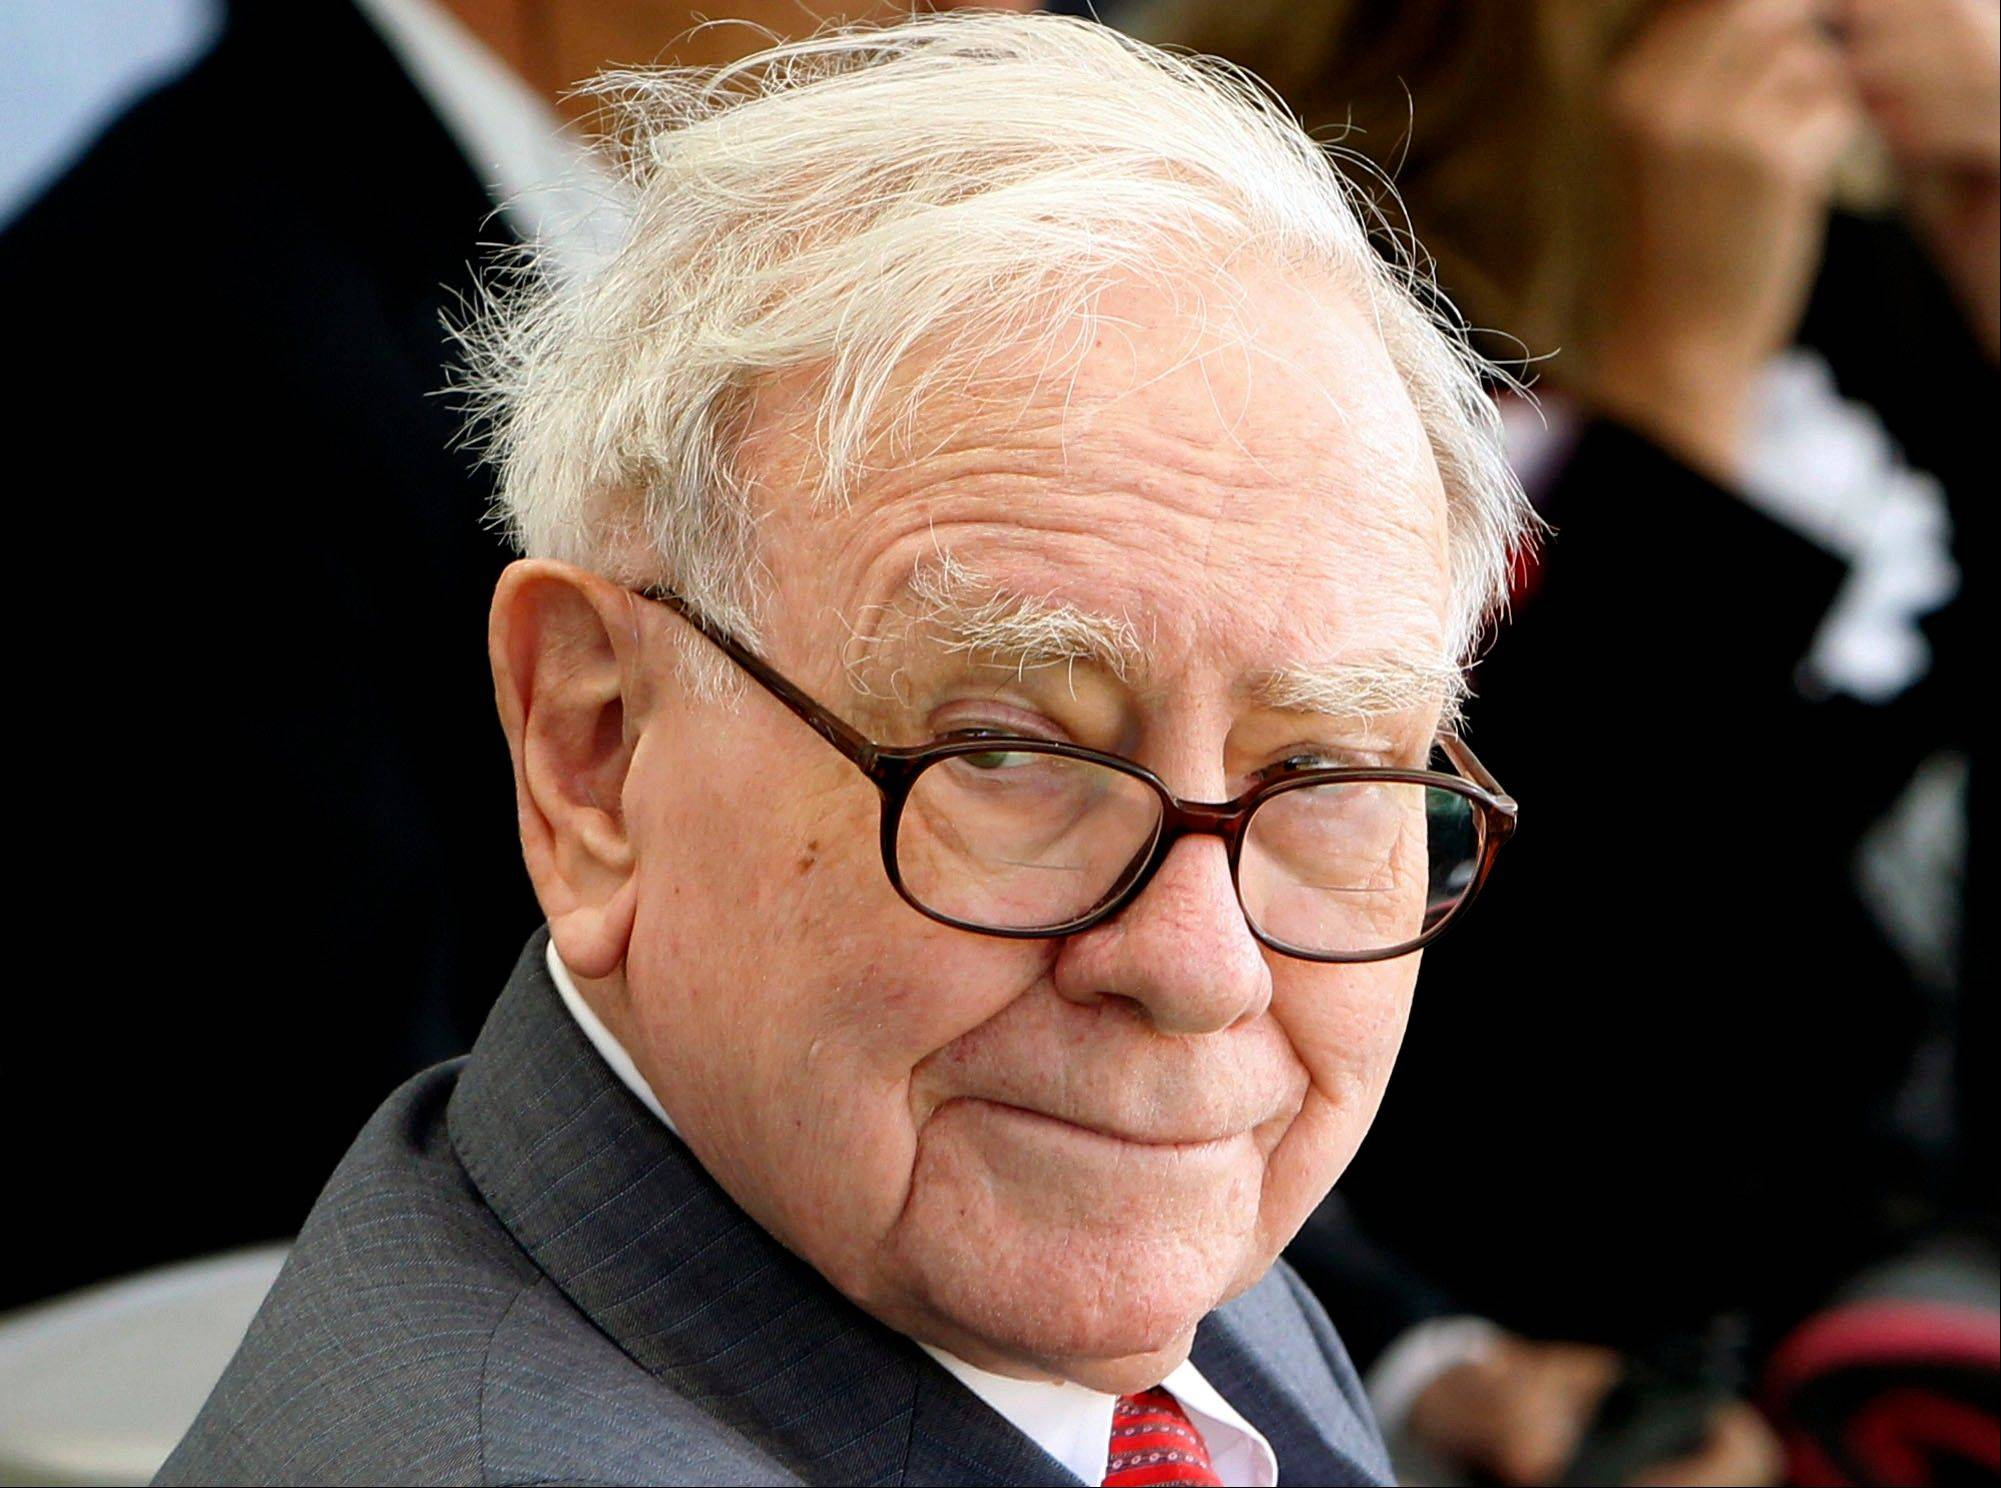 Billionaire Warren Buffett is auctioning off an all-you-can-eat tour of the See's Candy factory in California to benefit an education nonprofit there.